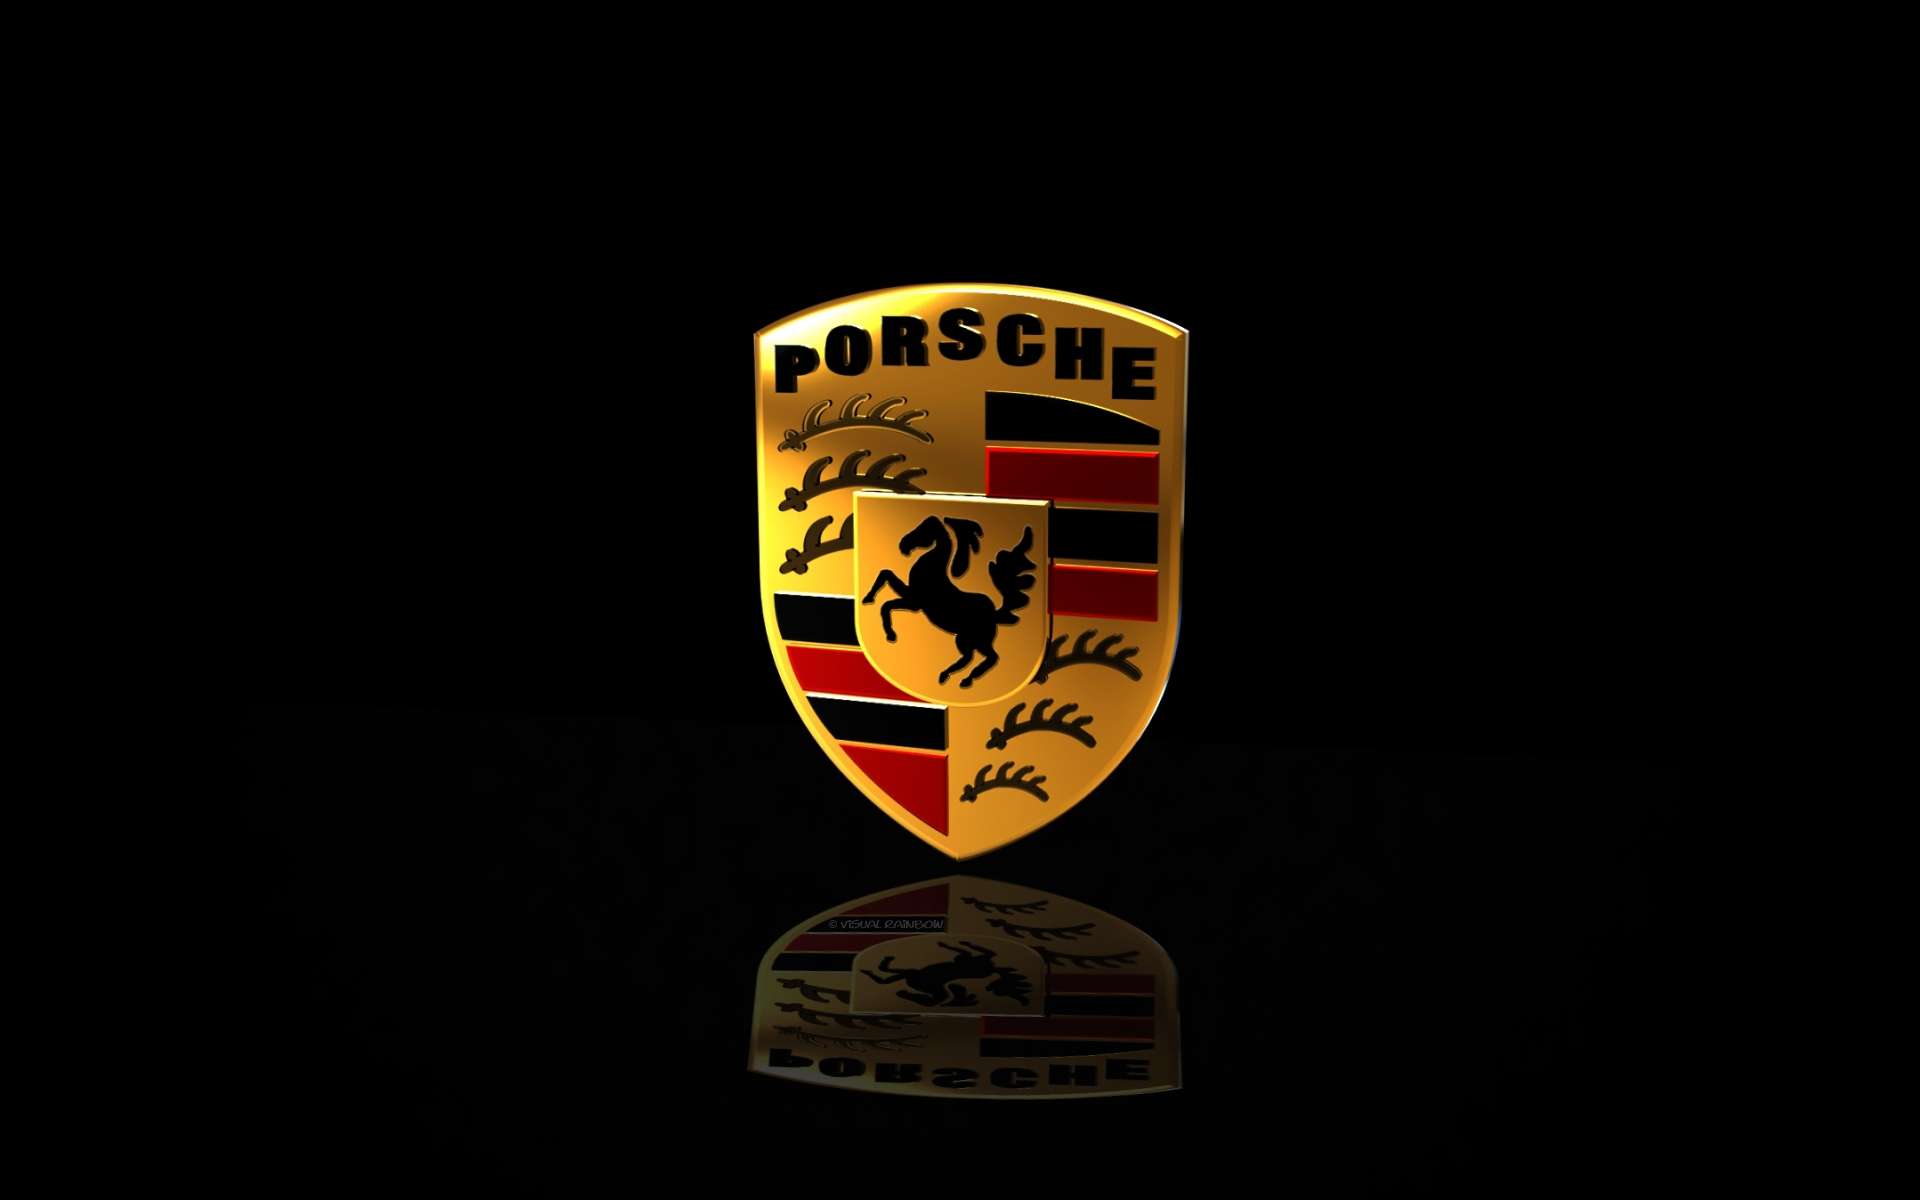 Porsche Logo Widescreen Wallpaper 1920x1200